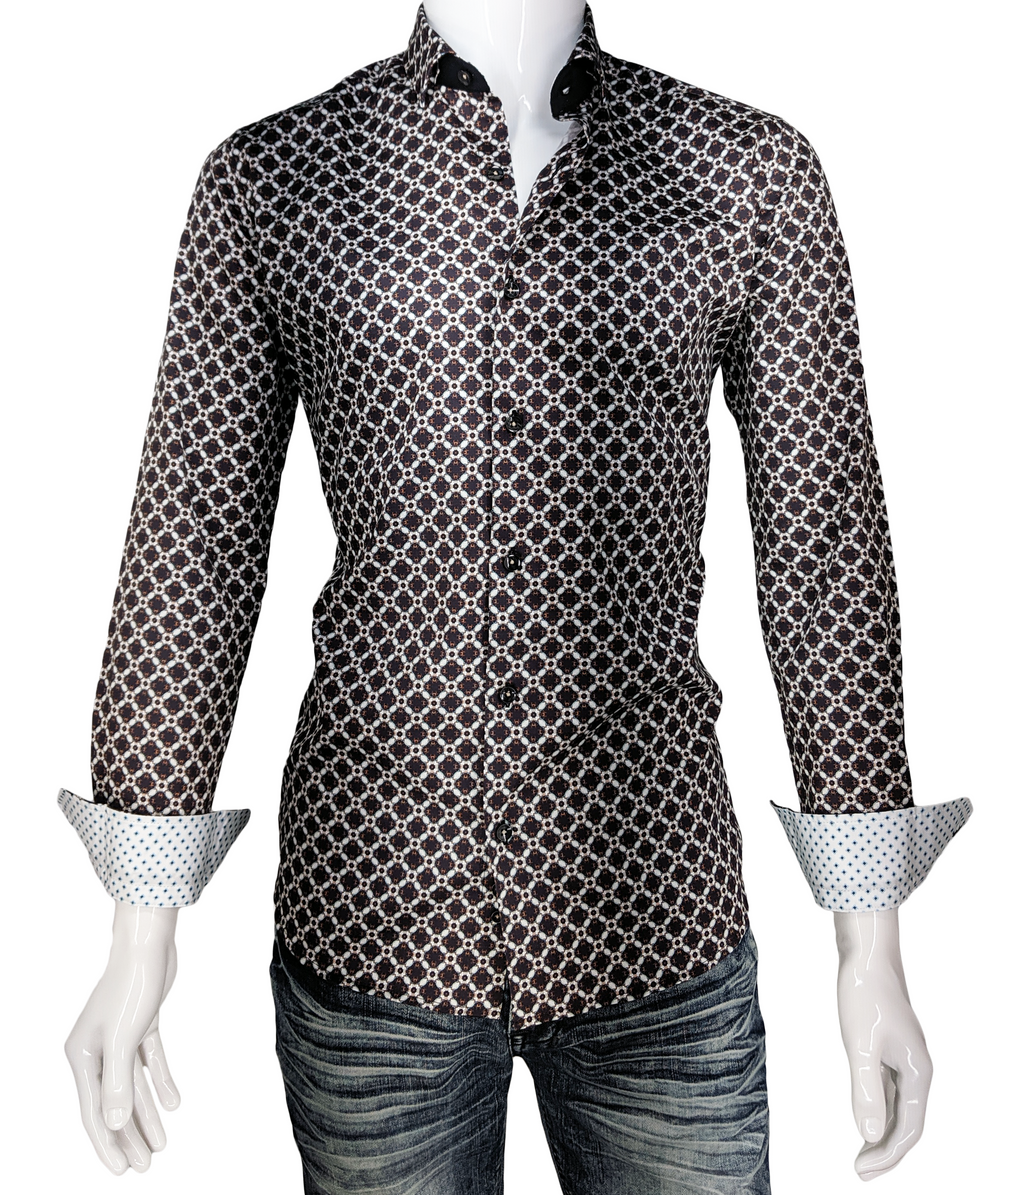 Men's Digital Print Long Sleeve Dress Shirt